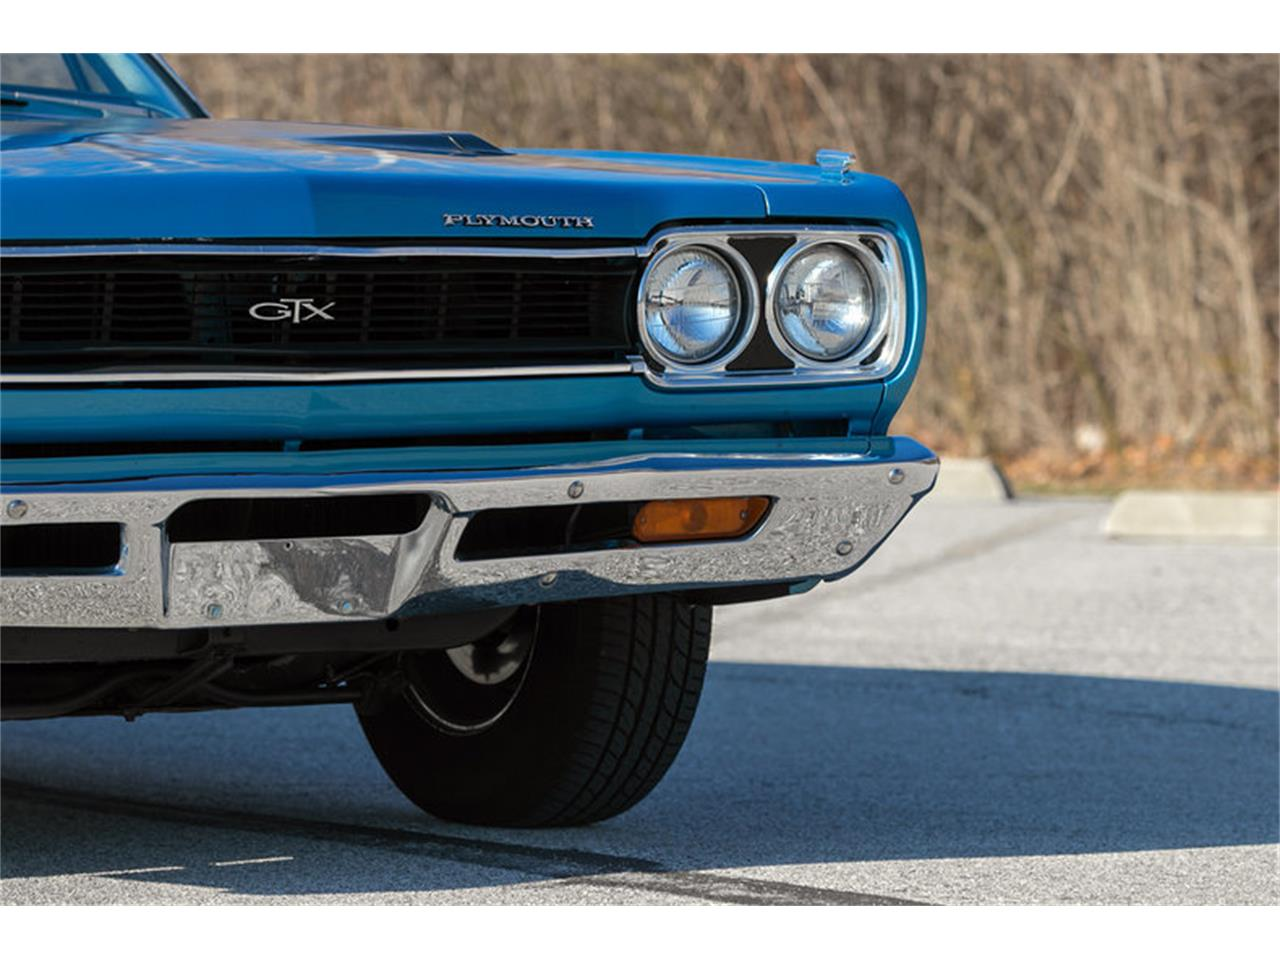 Large Picture of 1968 GTX located in St. Charles Missouri Offered by Fast Lane Classic Cars Inc. - MZFL